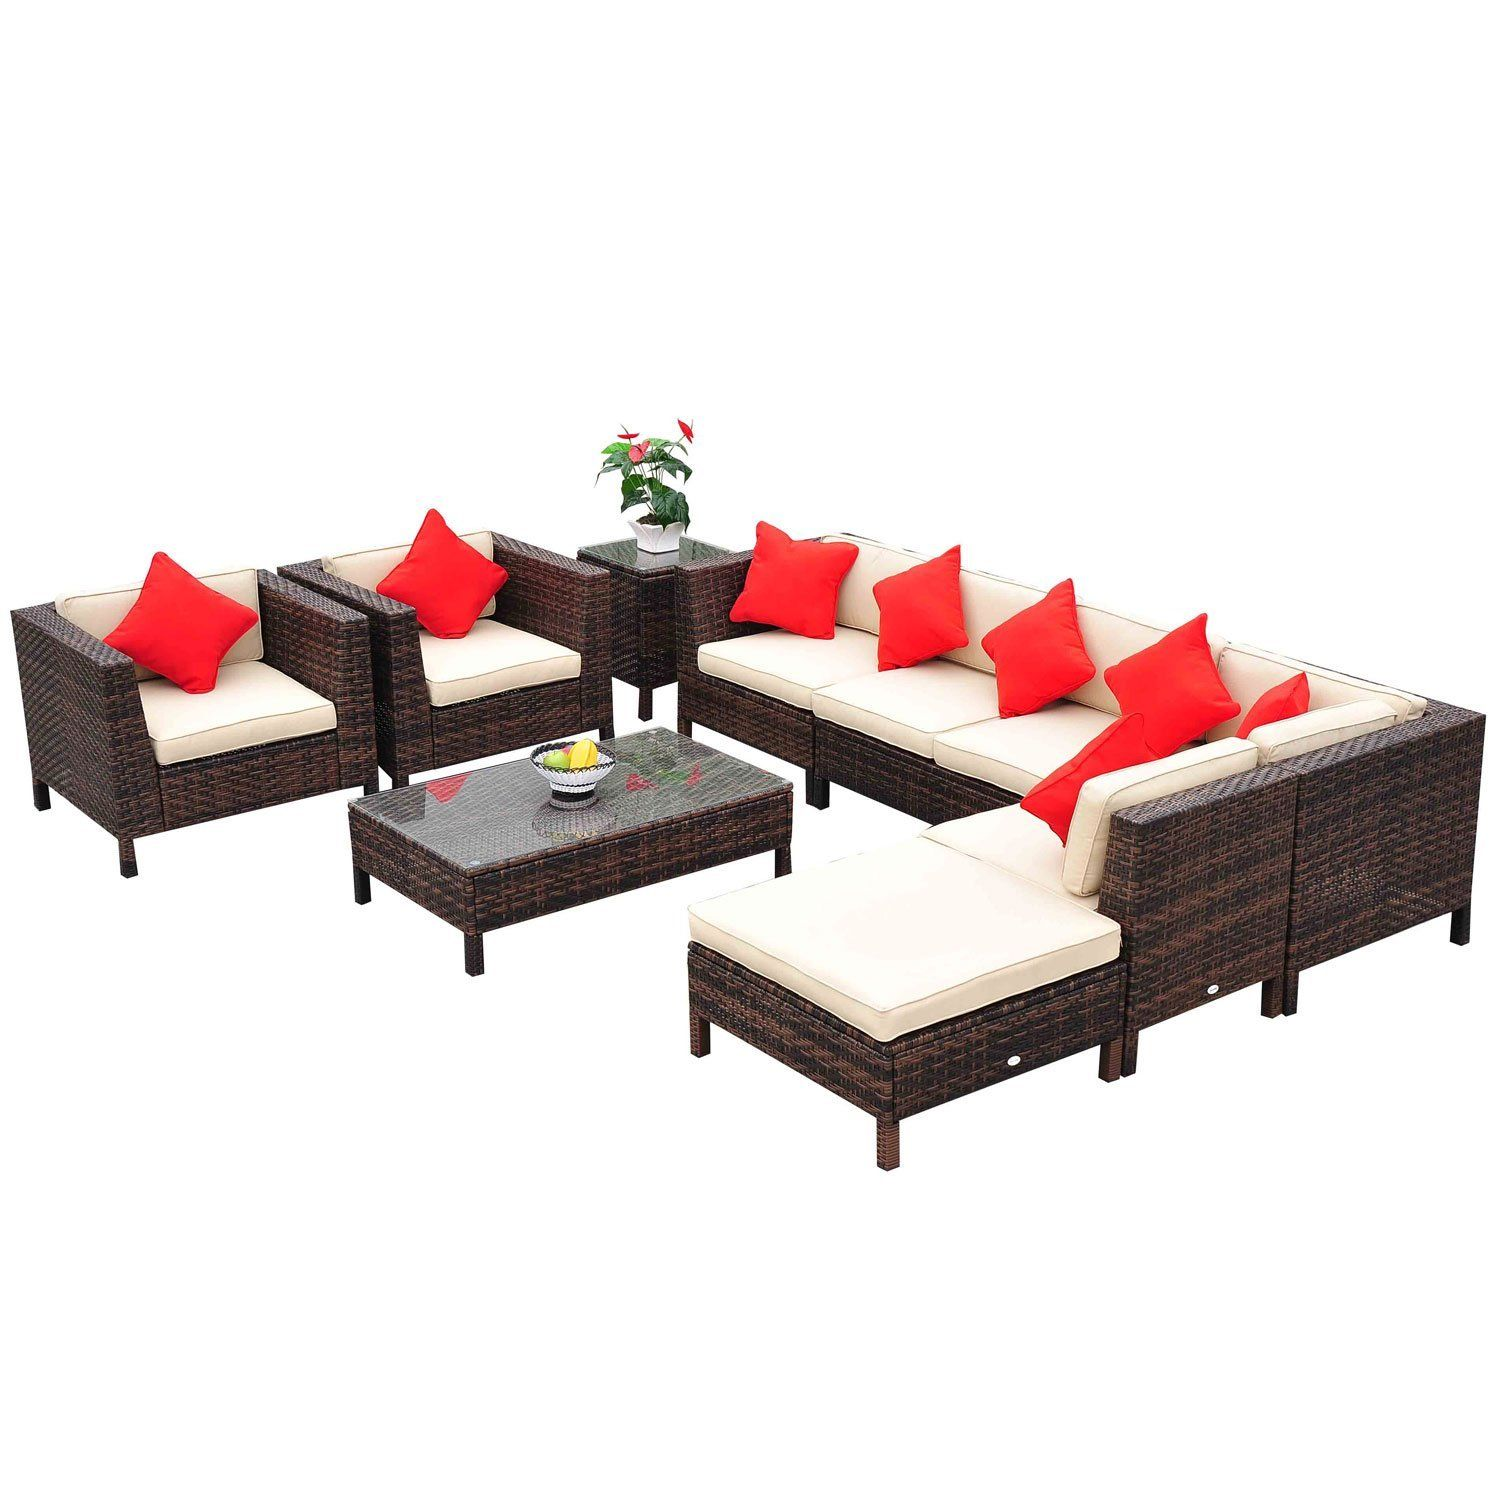 amazon : outsunny 9-piece outdoor pe rattan wicker sectional